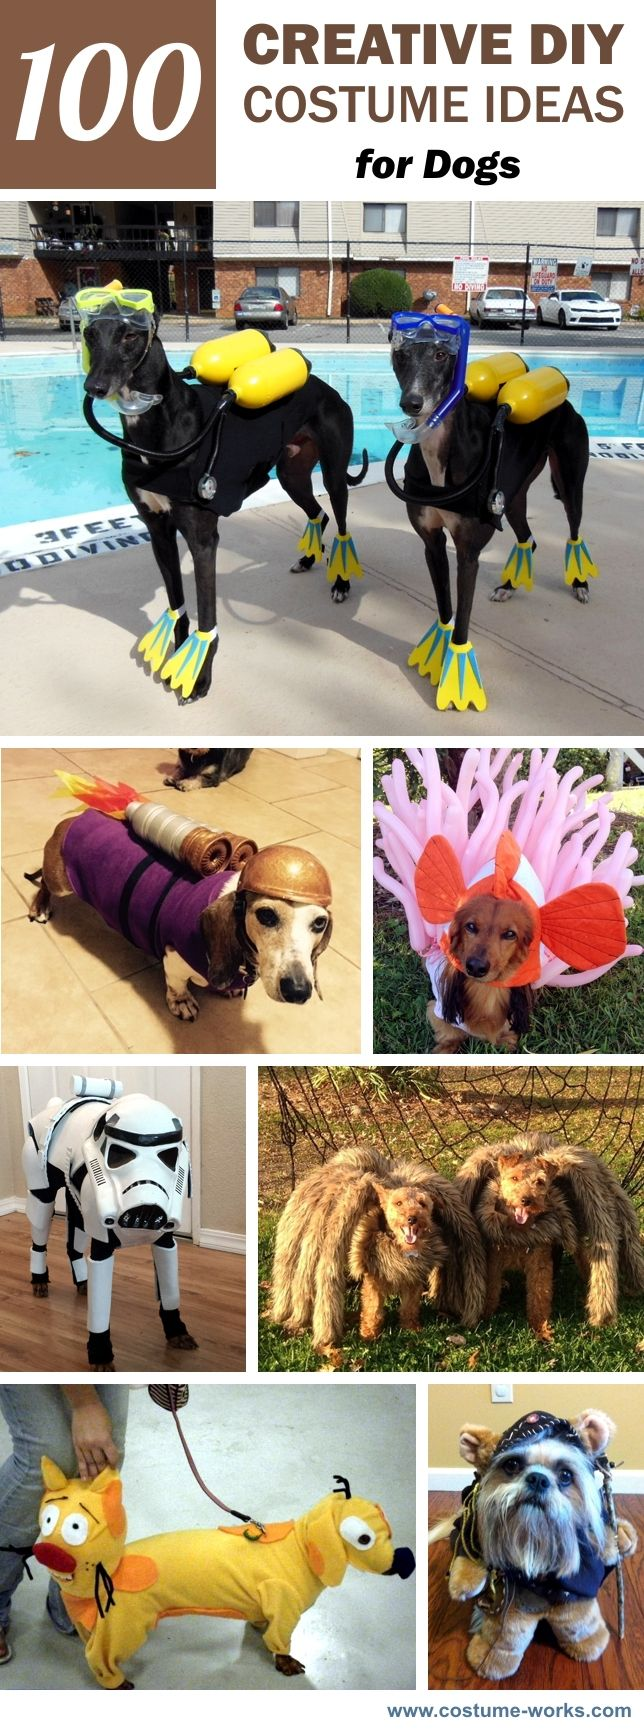 Best 25 dog costumes ideas on pinterest dog halloween costumes 100 creative diy costume ideas for dogs solutioingenieria Image collections